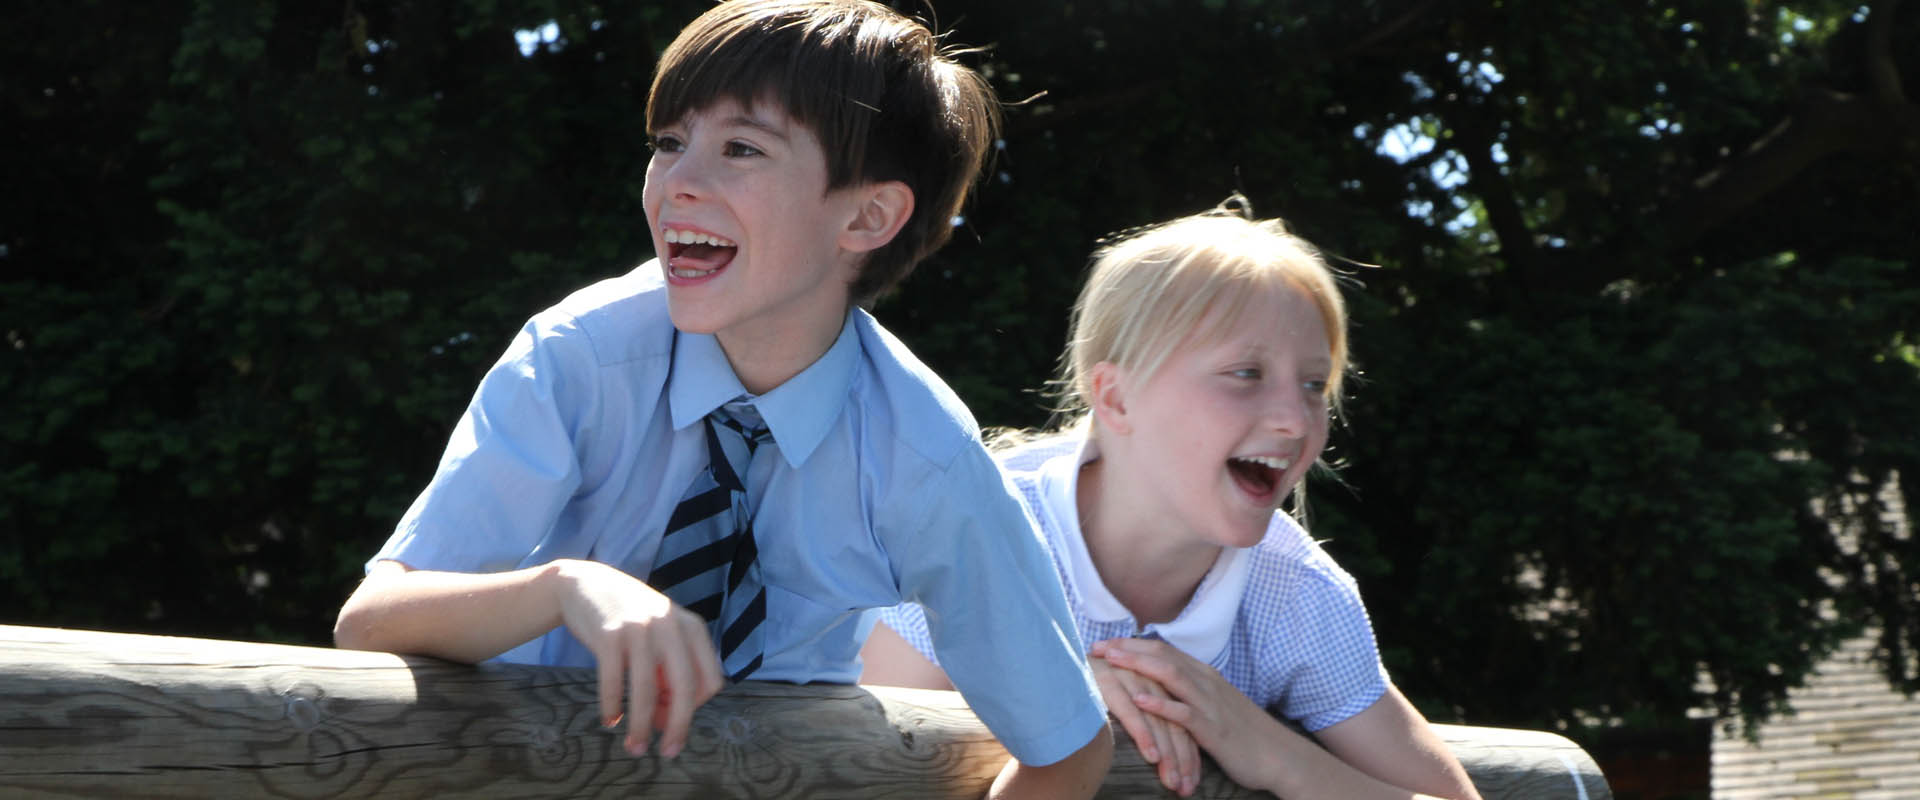 St Mary's Catholic School Web Site